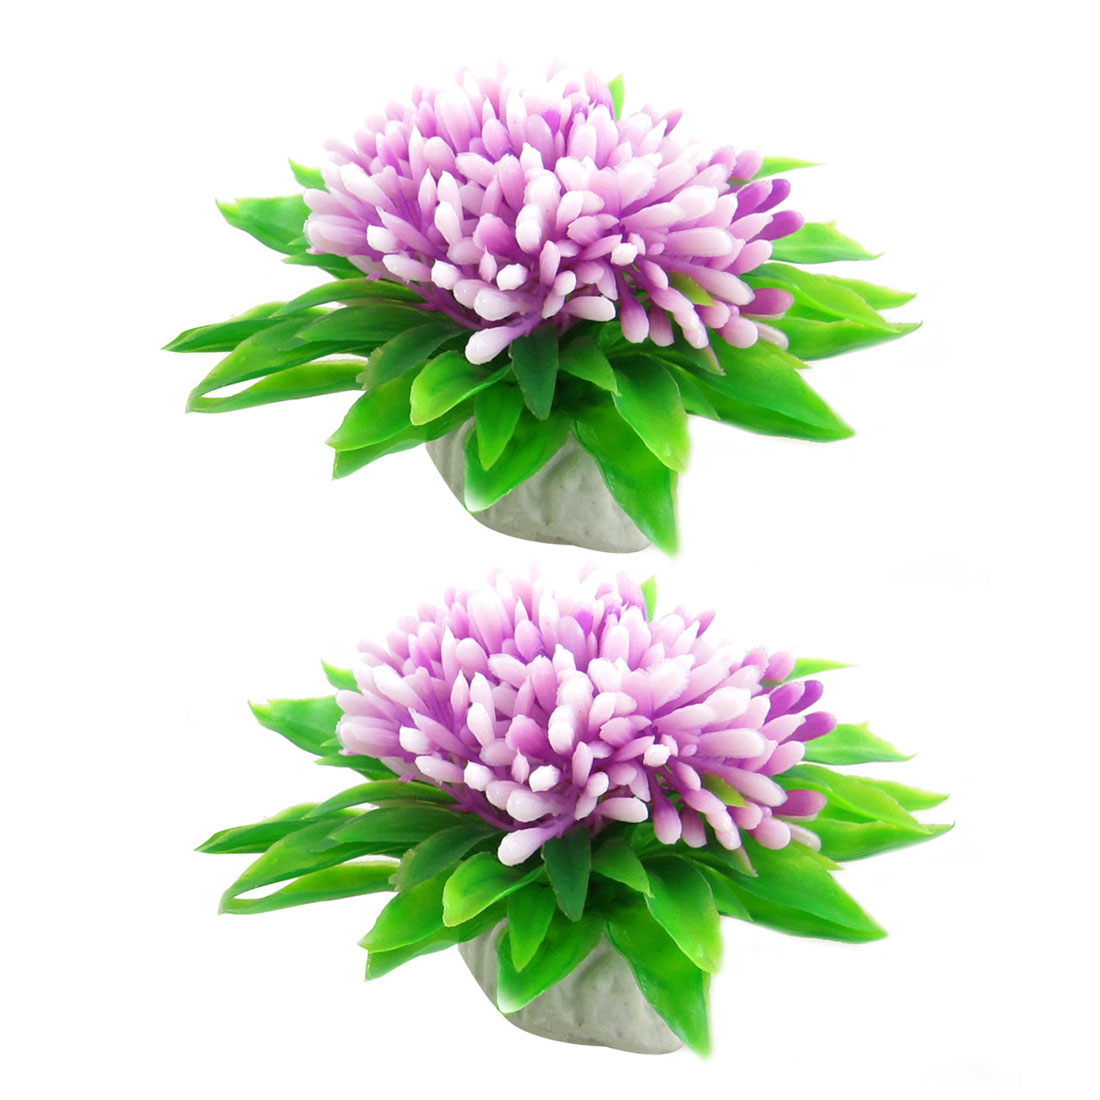 2 Pcs Fish Tank Emulational Lavender Flower Plastic Plants w Base